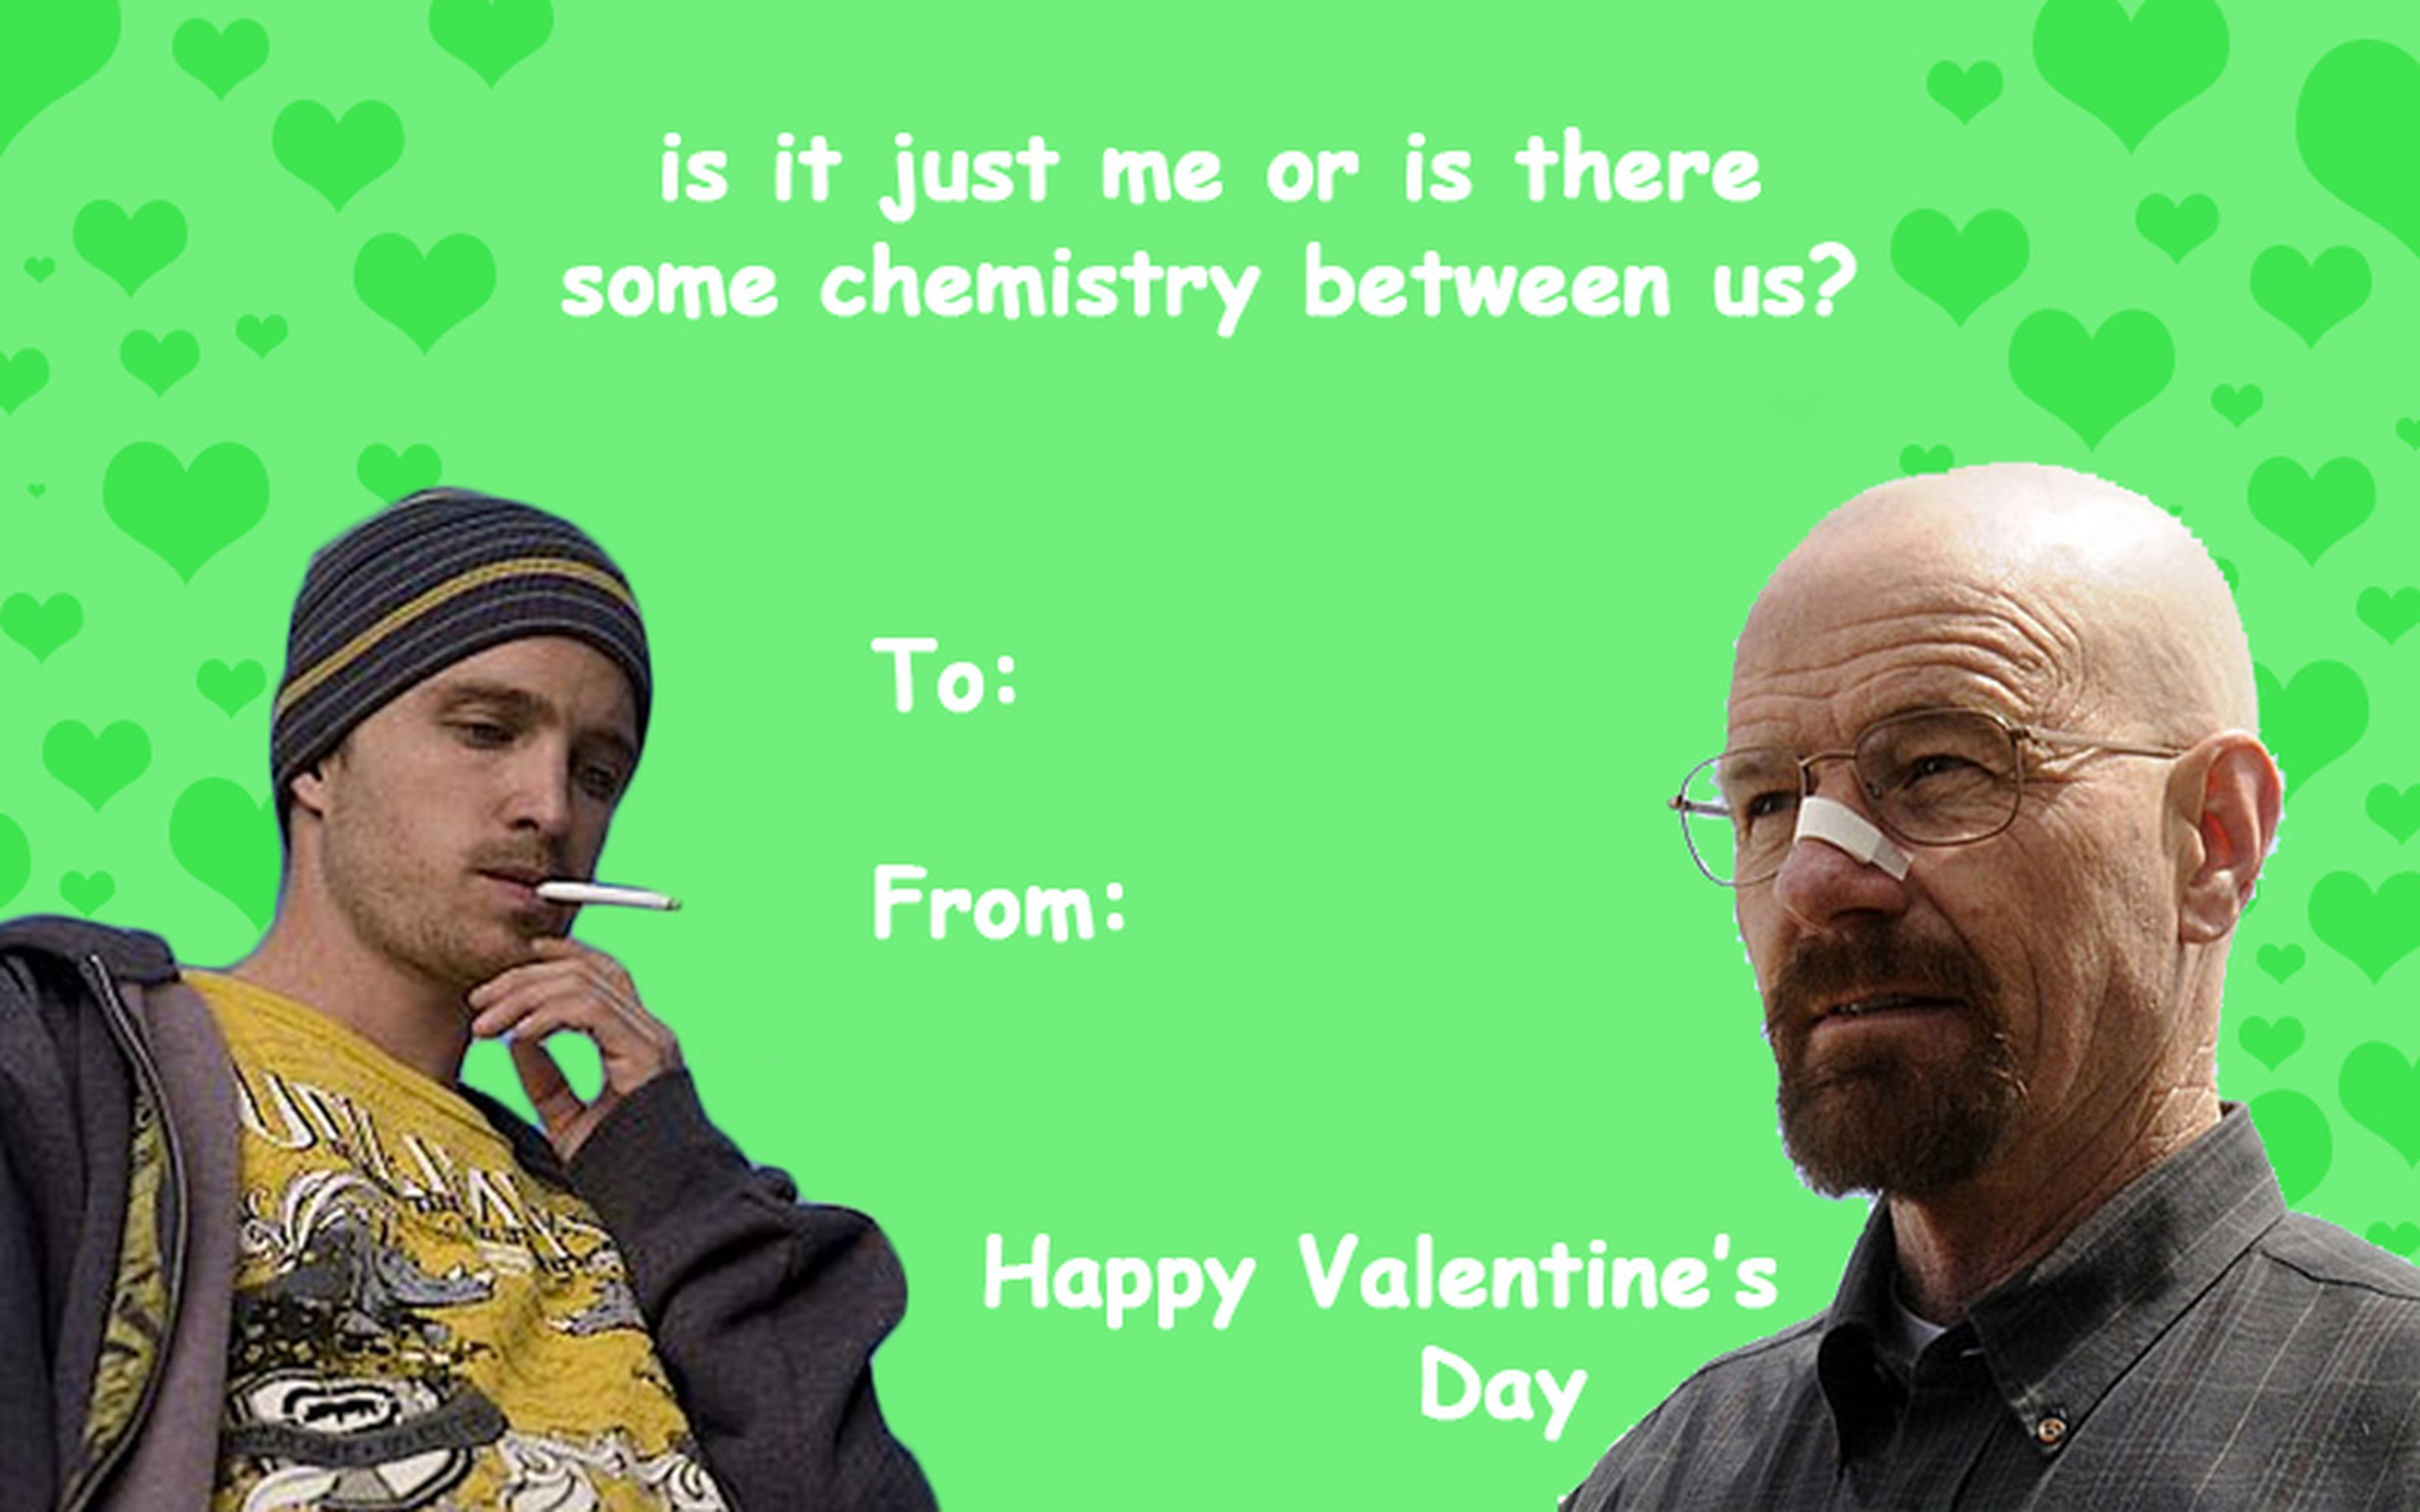 21 Tumblr Valentines For Your Internet Crush Valentines Day Memes Funny Valentines Cards For Friends Bad Valentines Cards